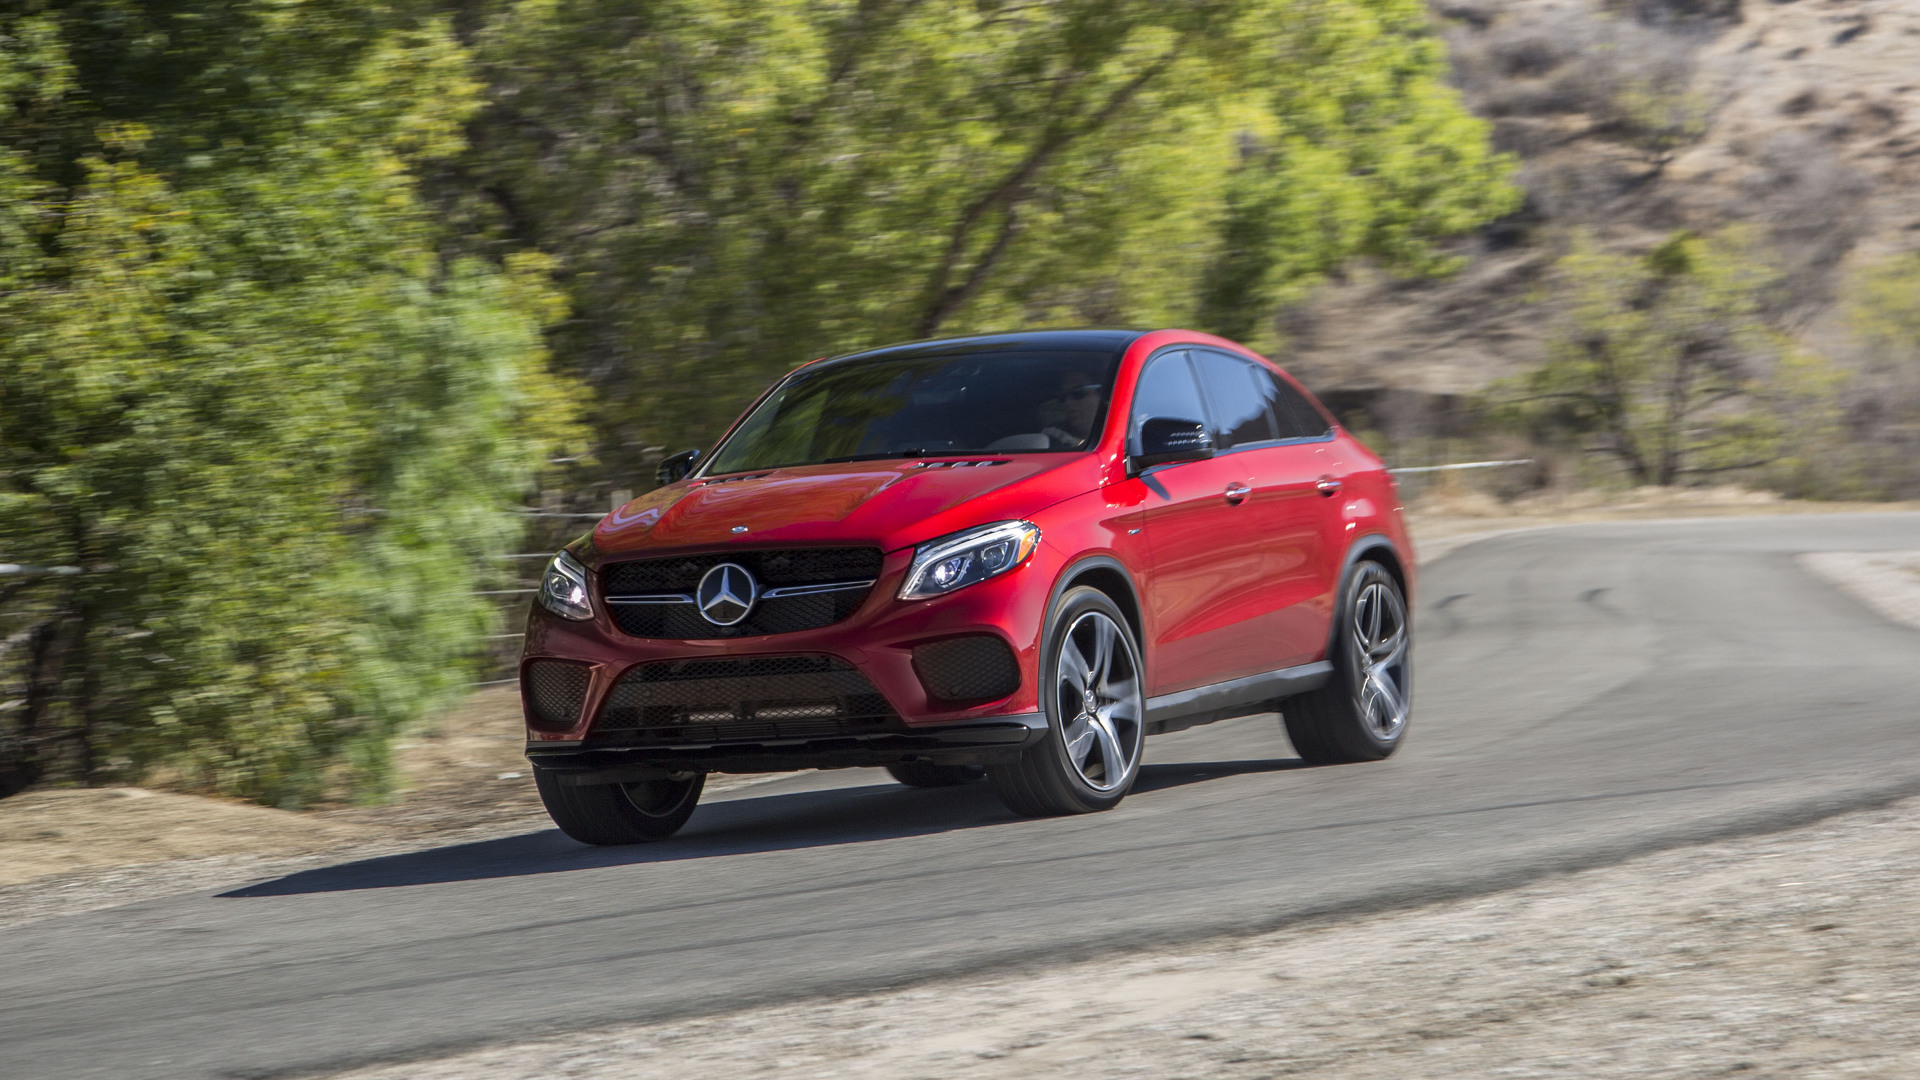 2016 Mercedes Benz Gle450 Amg Coupe Recalled For Engine Shut Off Issue